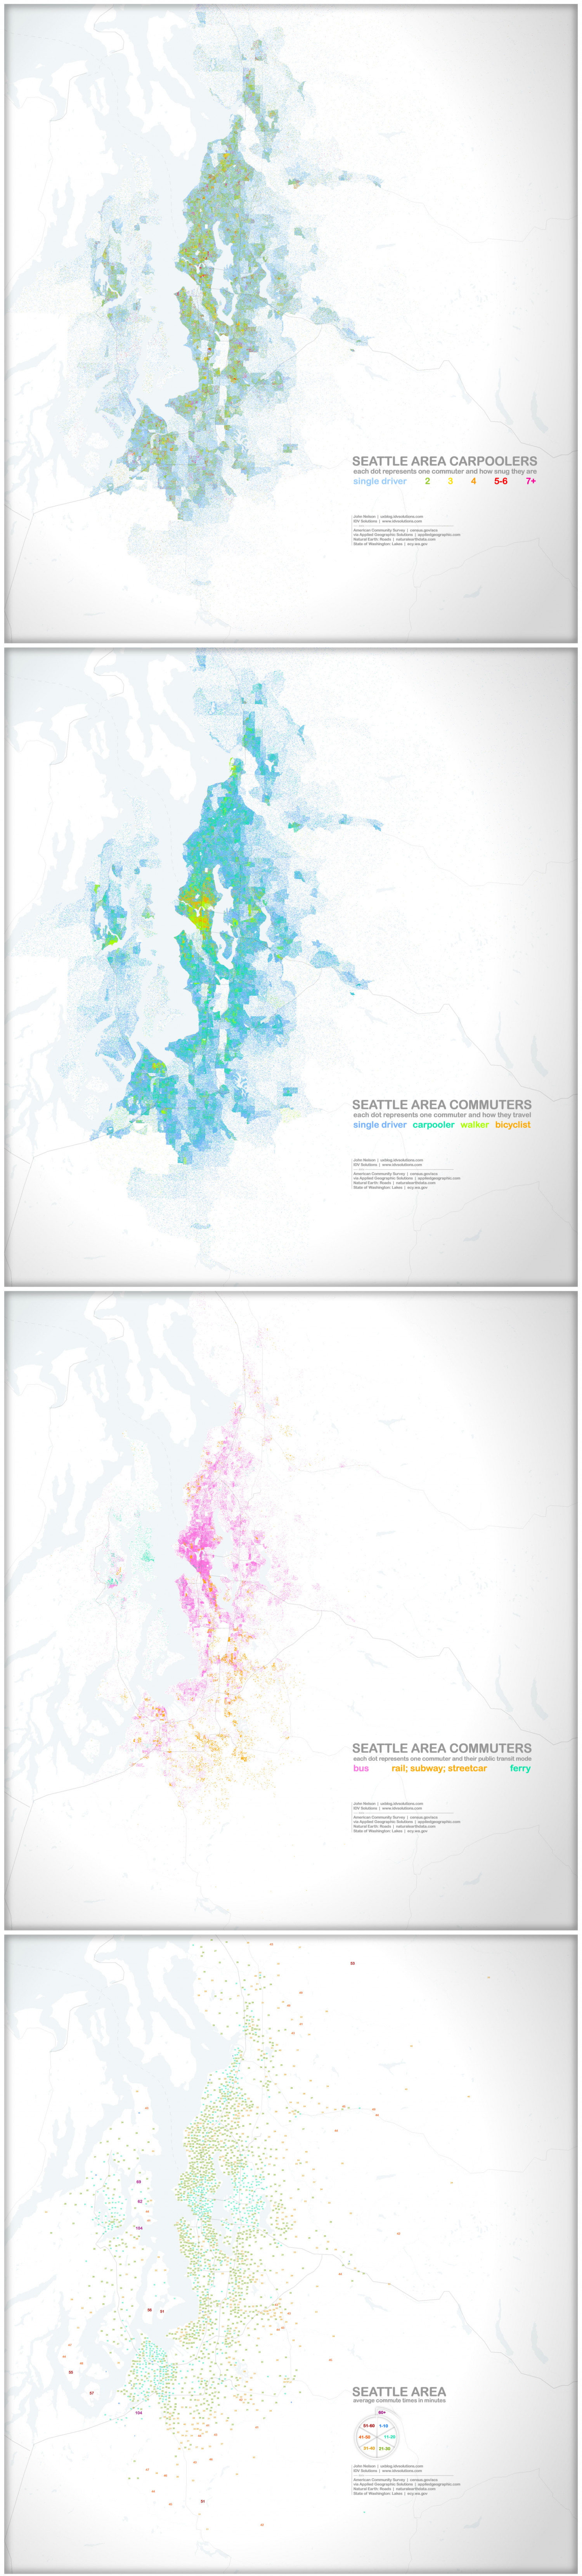 People Dots of Seattle Commuting Infographic